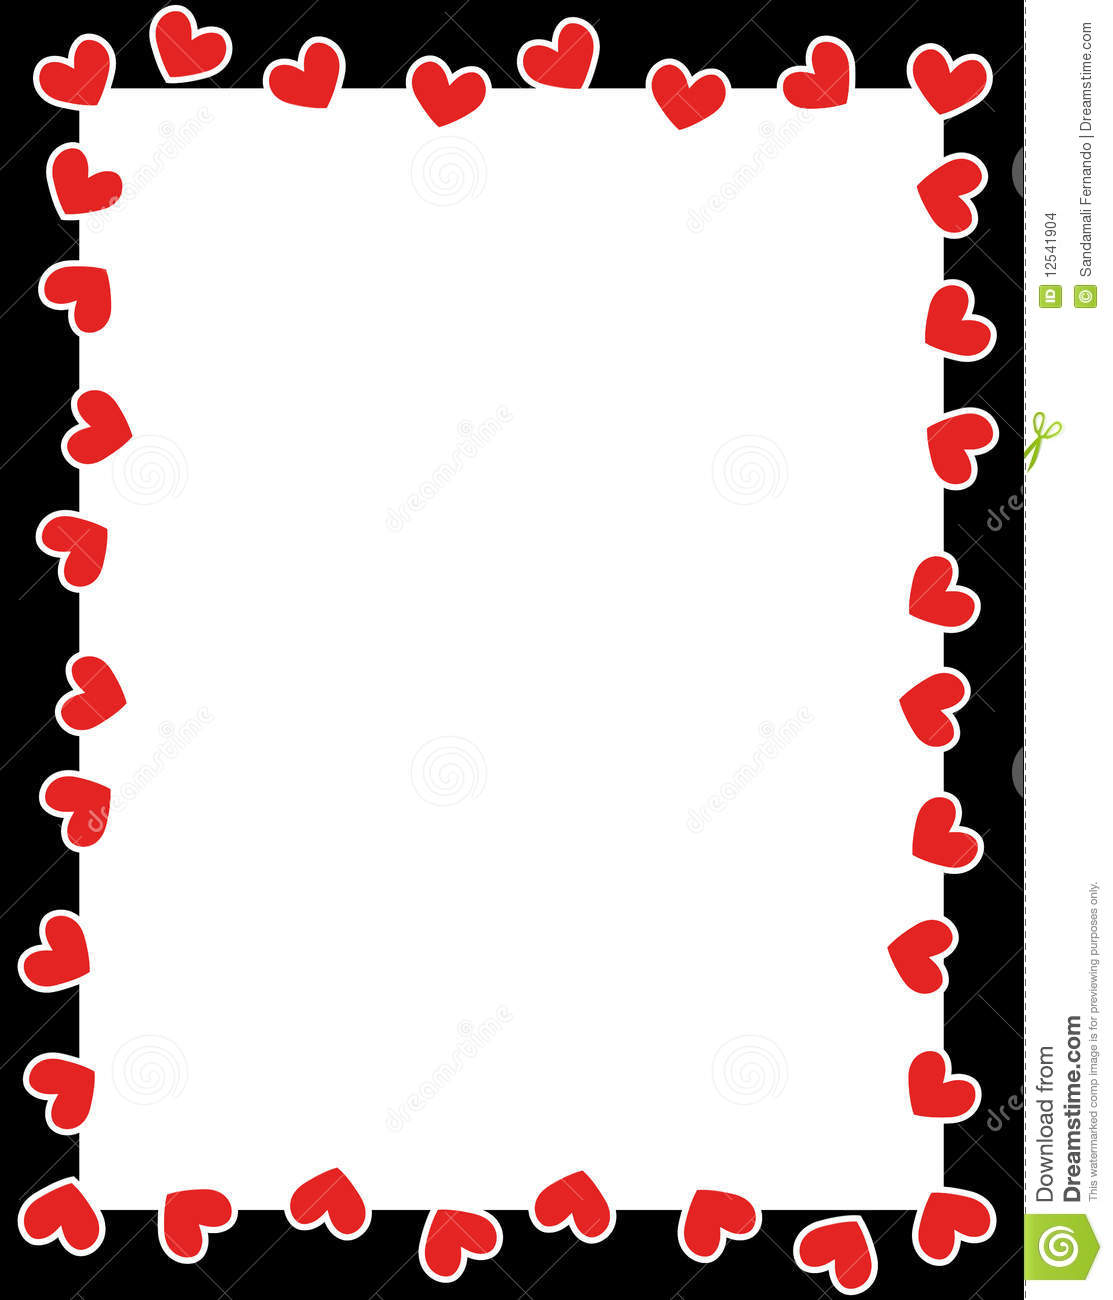 Photo frame clipart with hearts graphic library Valentines day clipart frame - ClipartFest graphic library